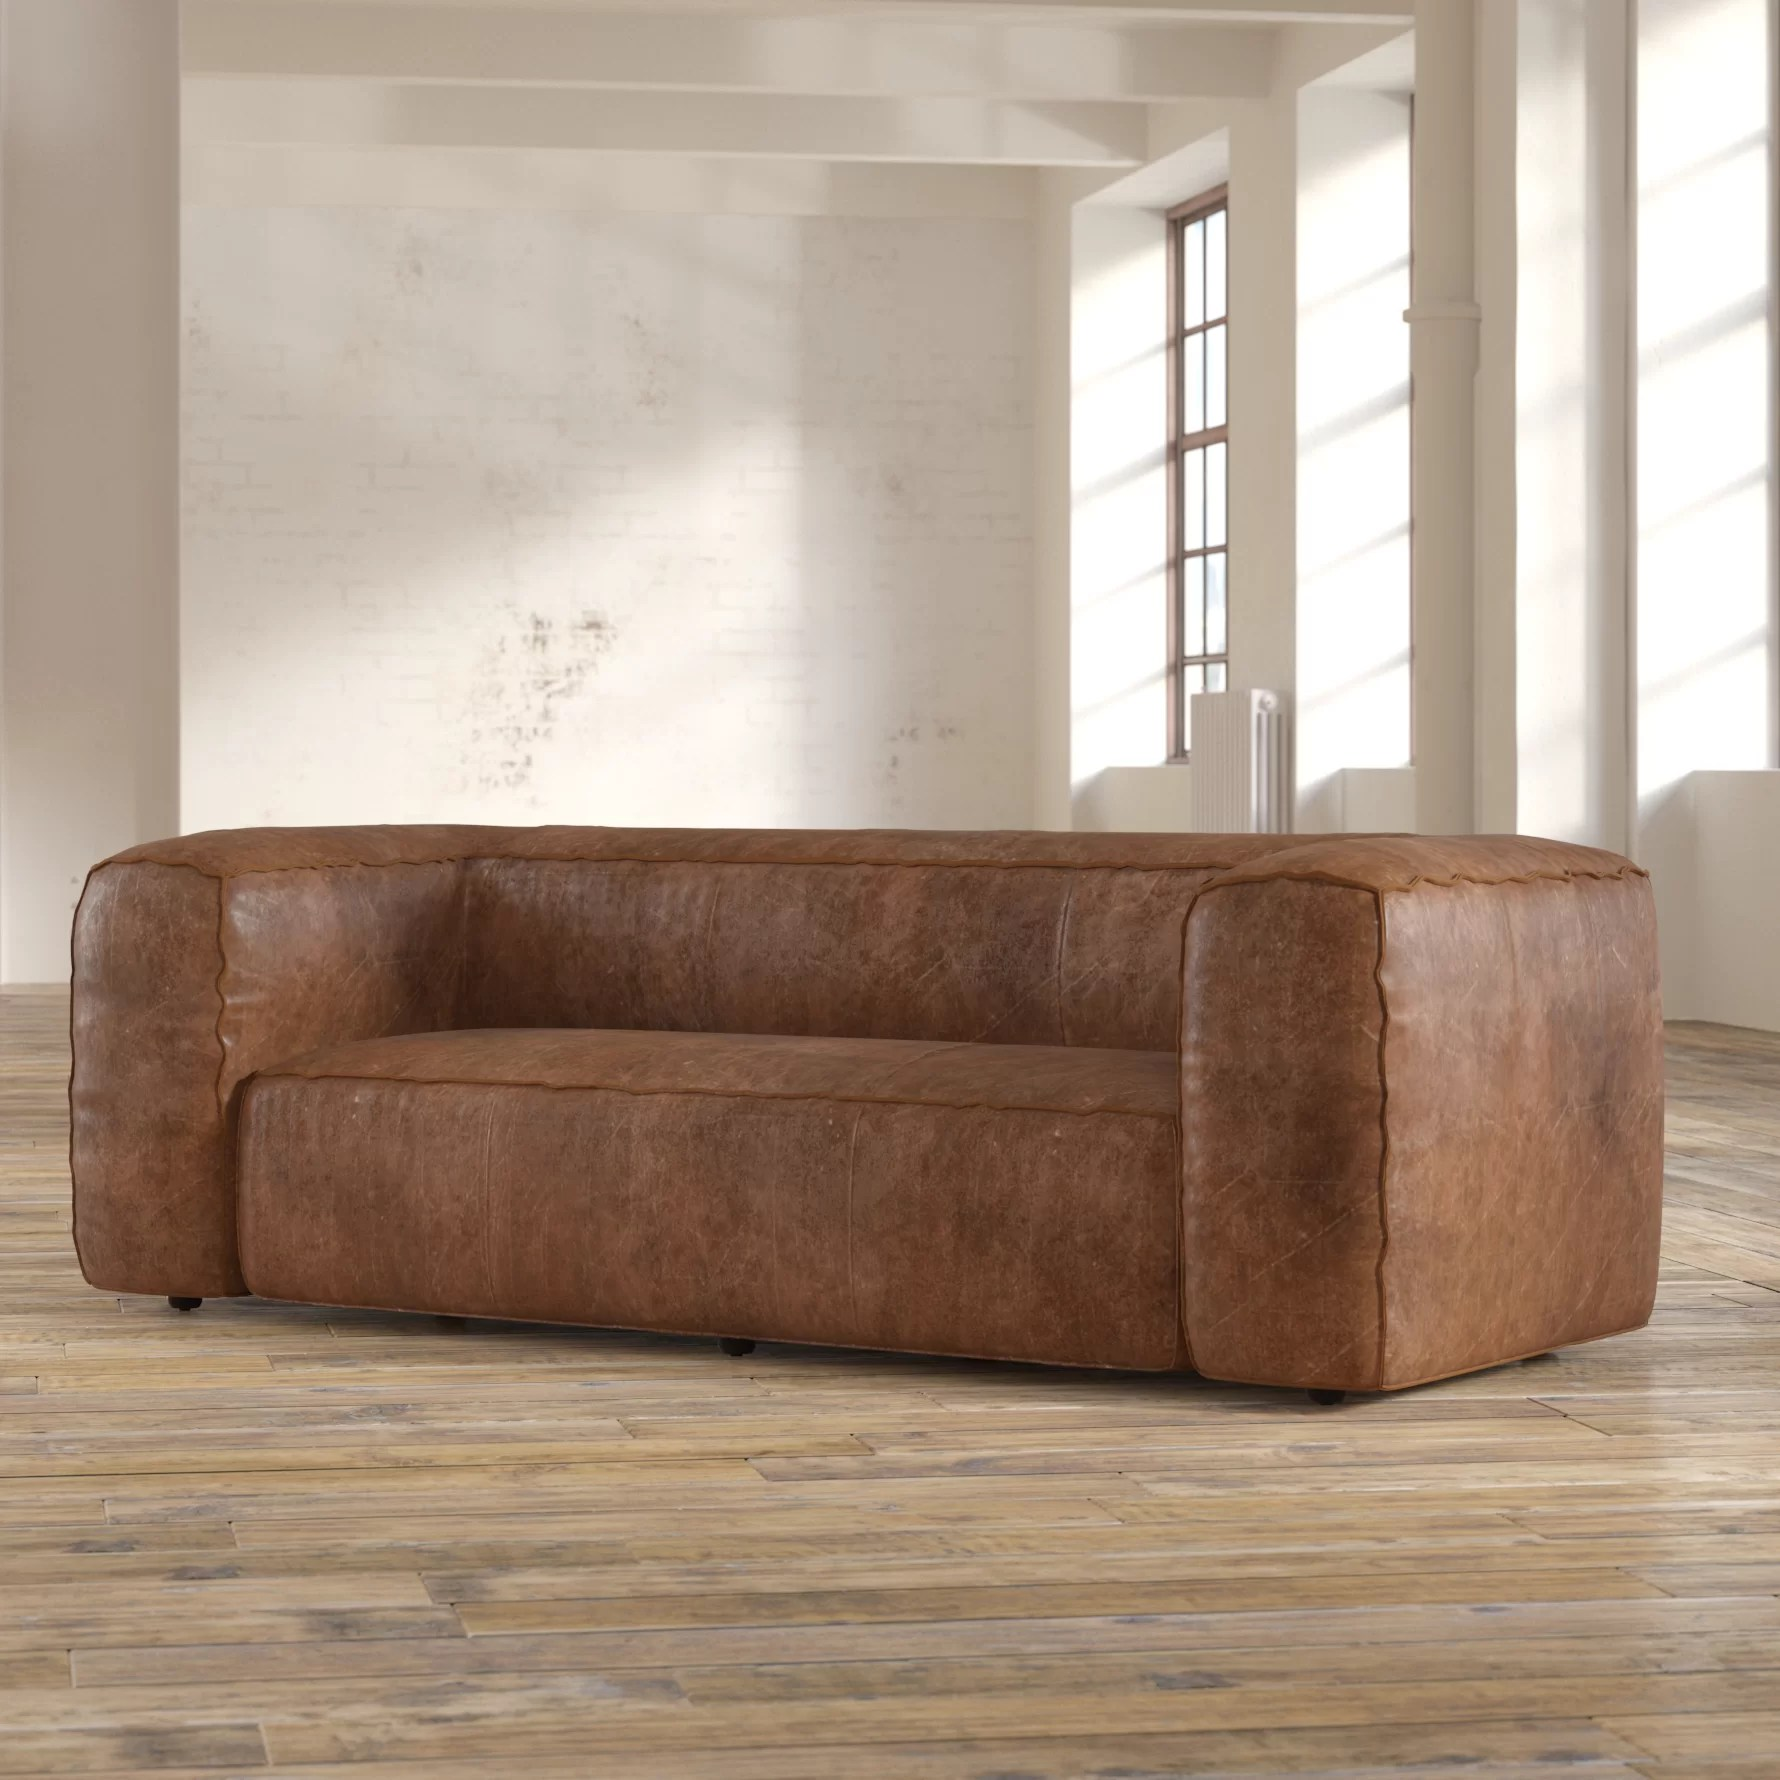 Sofa Leather Repair Toronto Annessia Leather Sofa